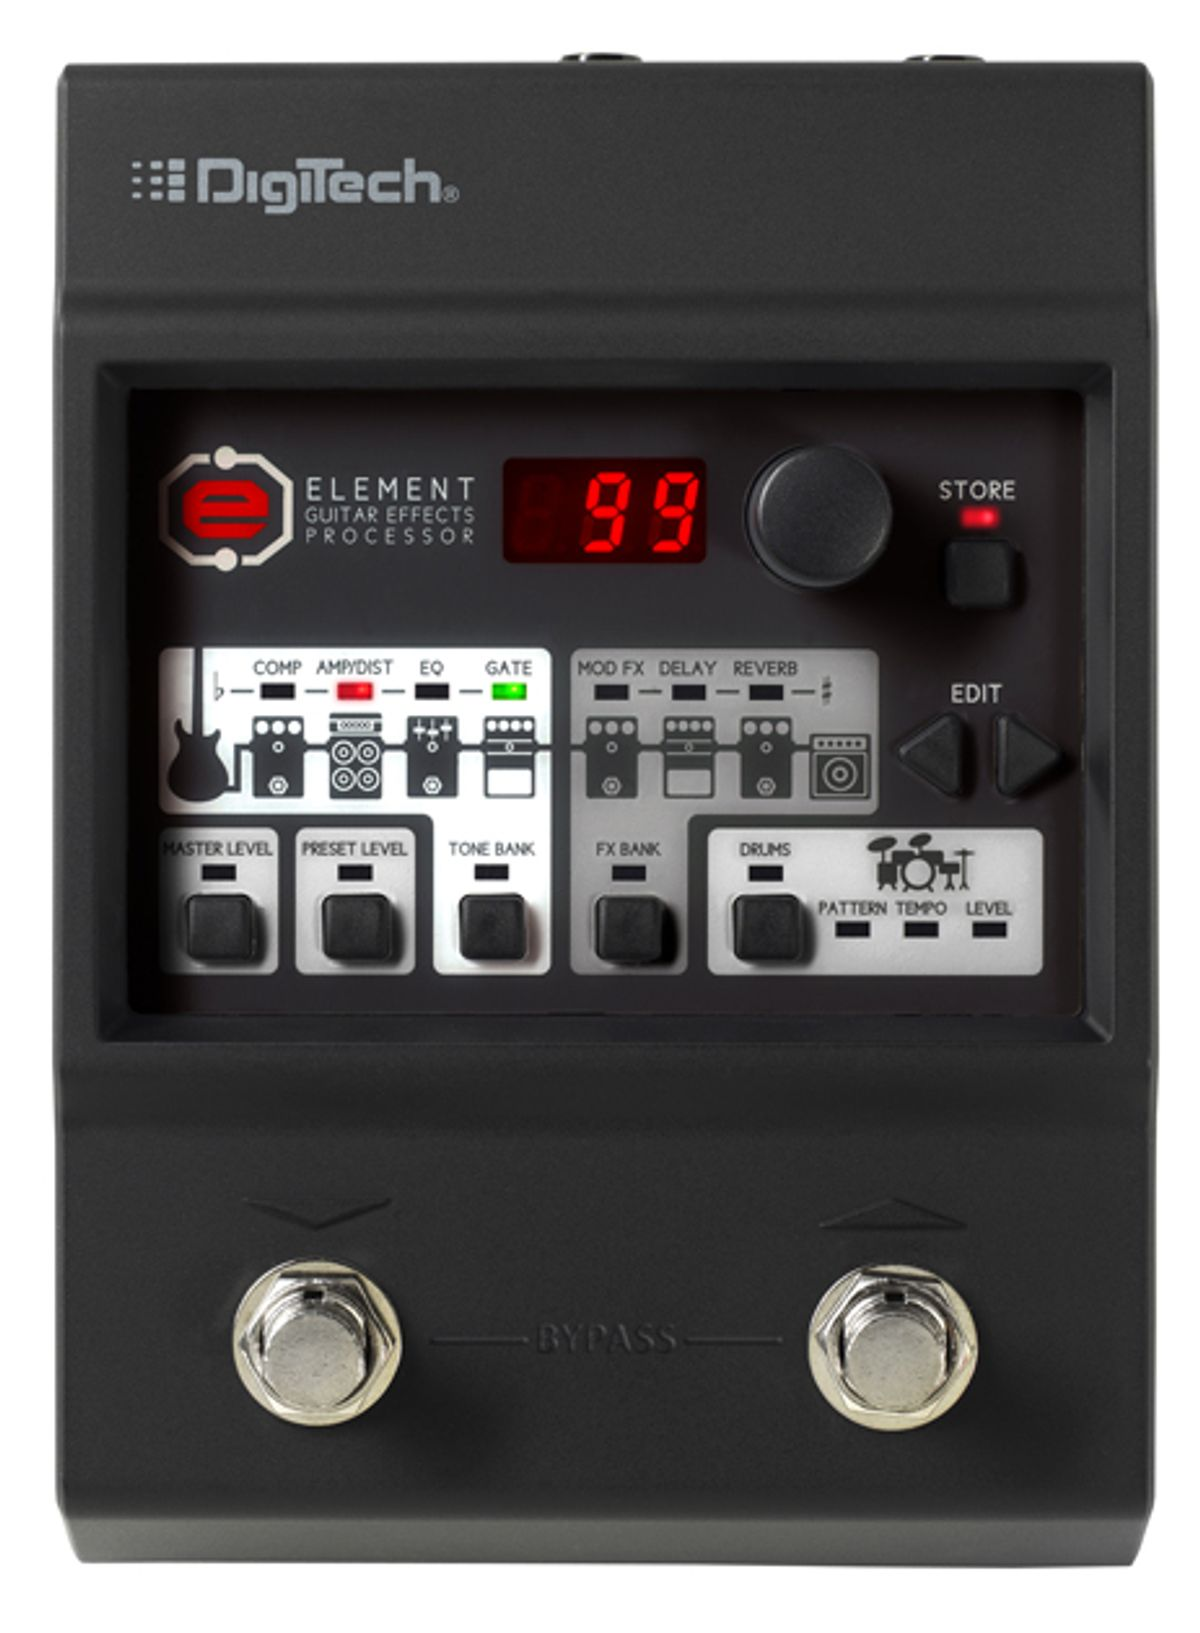 DigiTech Introduces Element XP and Element Guitar Multi-Effects Pedals